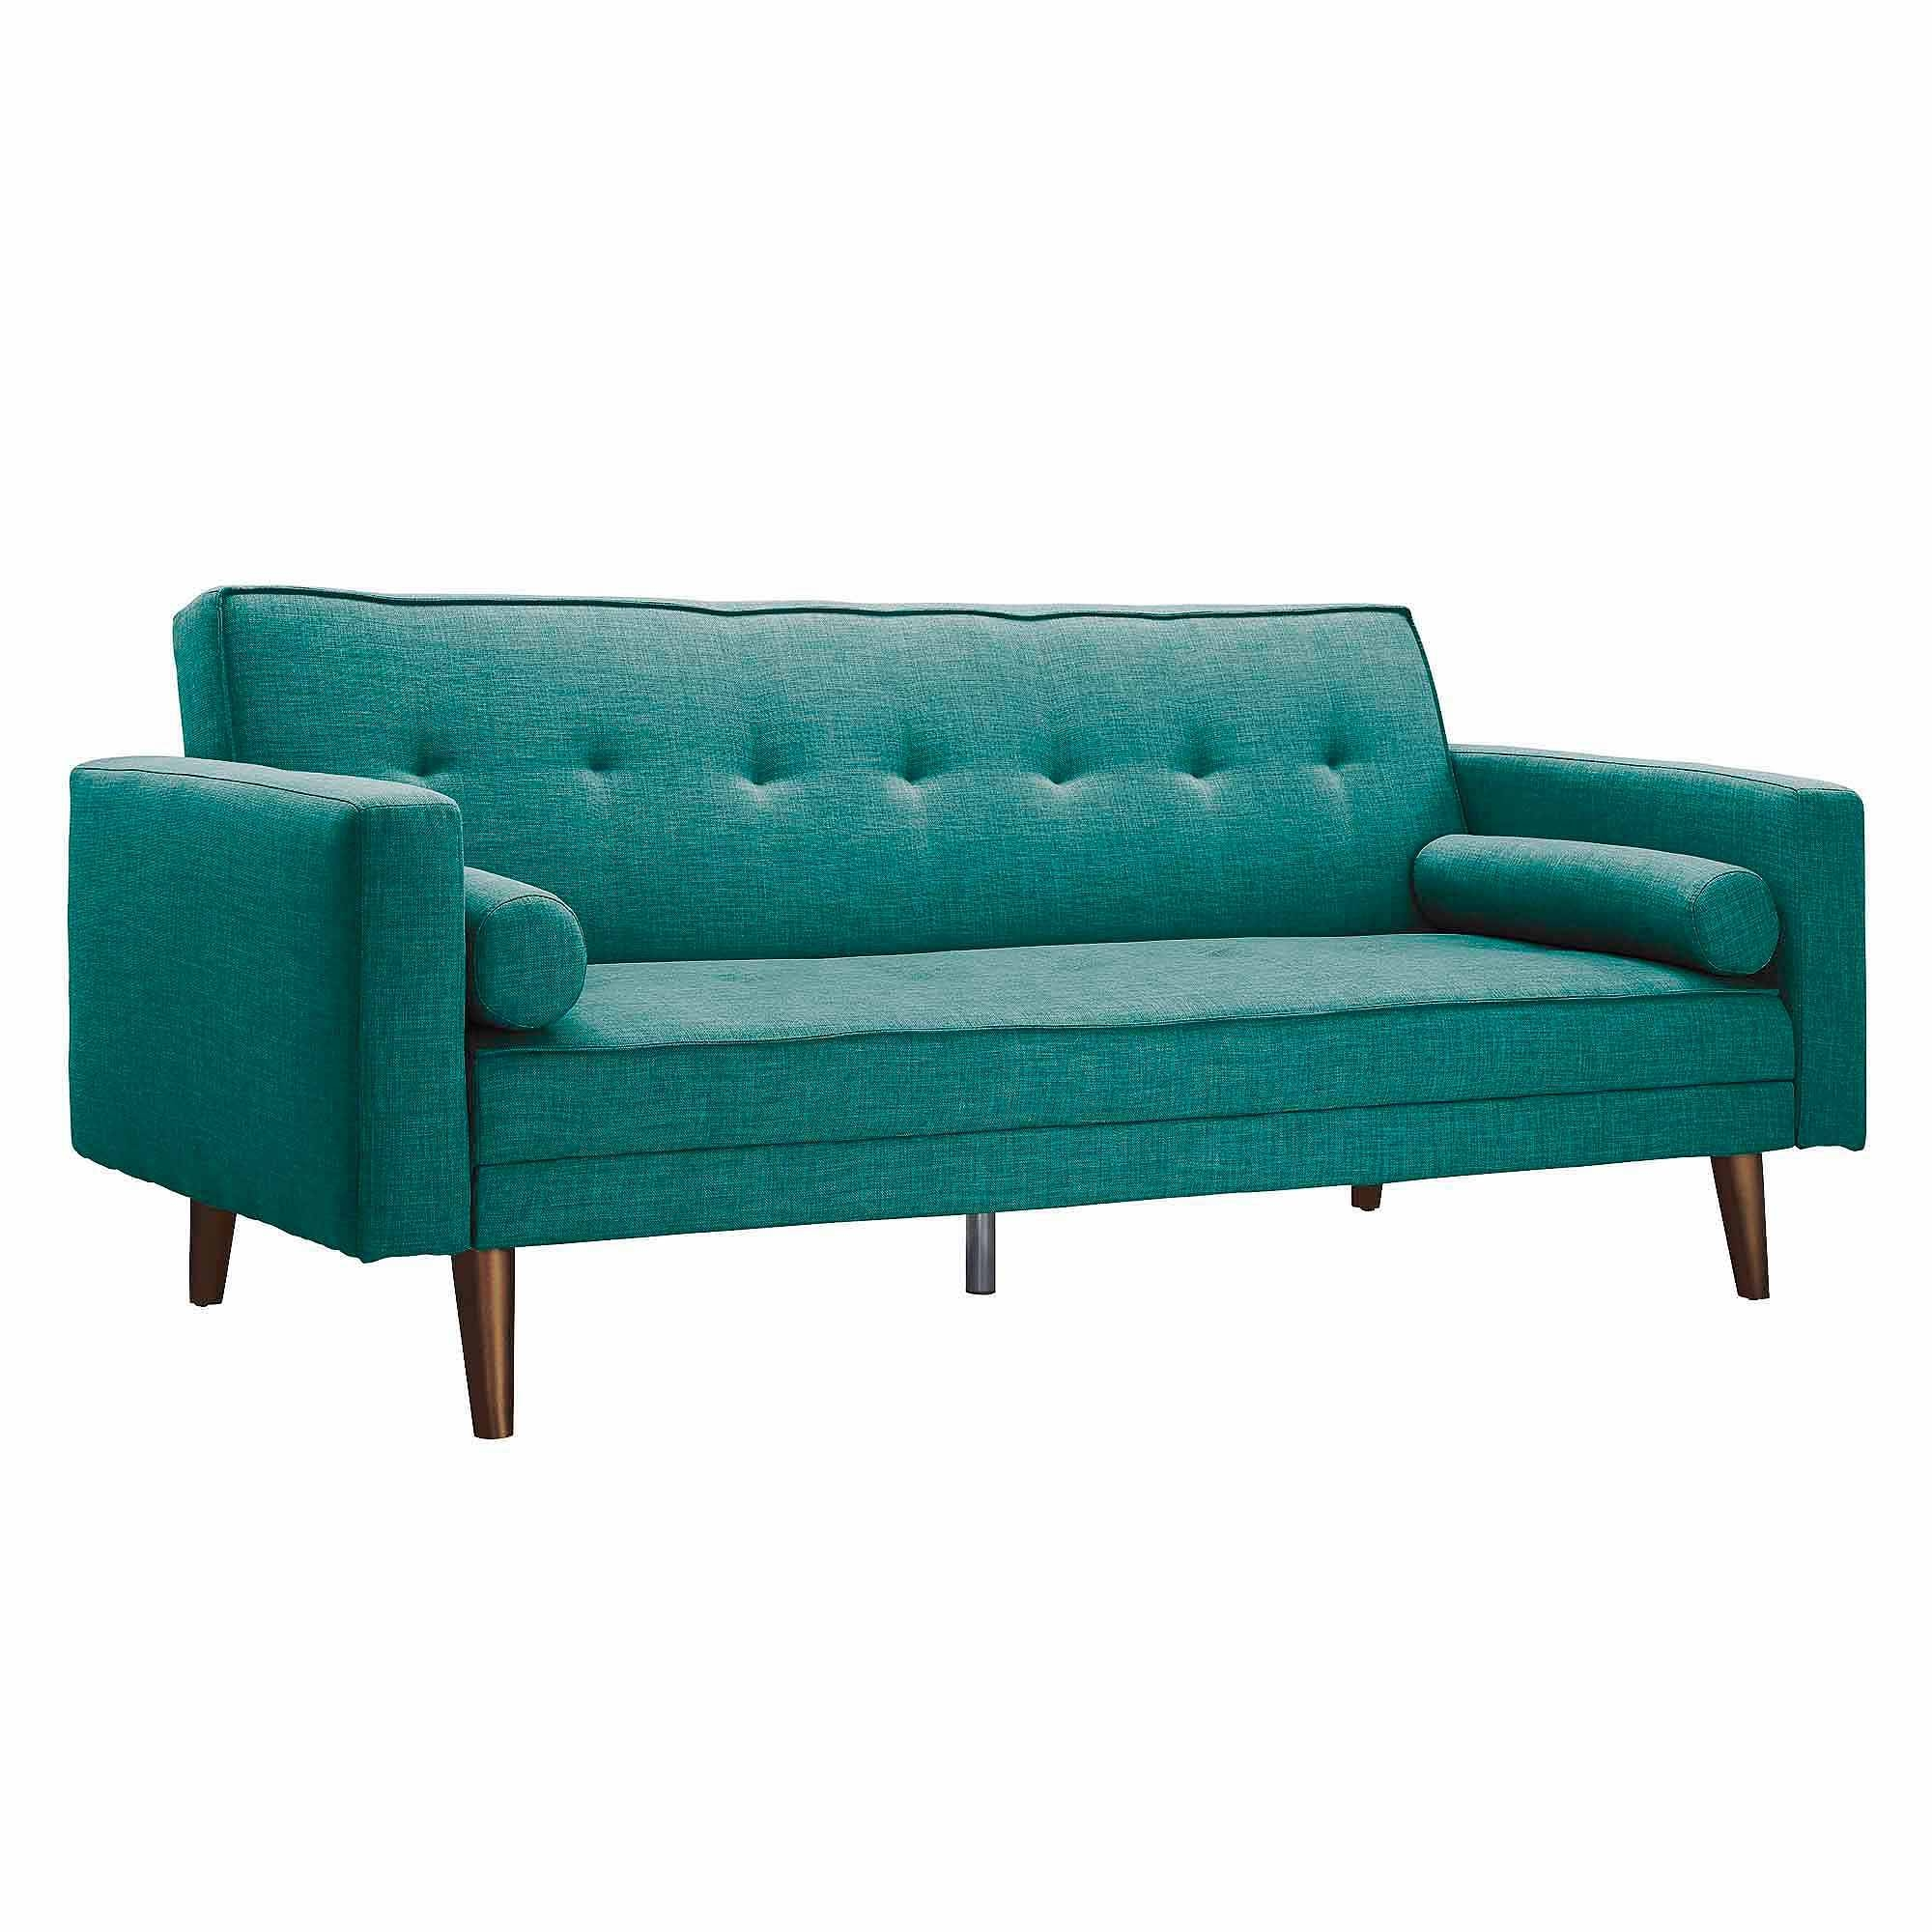 Furniture: Comfort Inflatable Furniture Walmart For Your Relaxing with regard to Aqua Sofa Beds (Image 17 of 30)